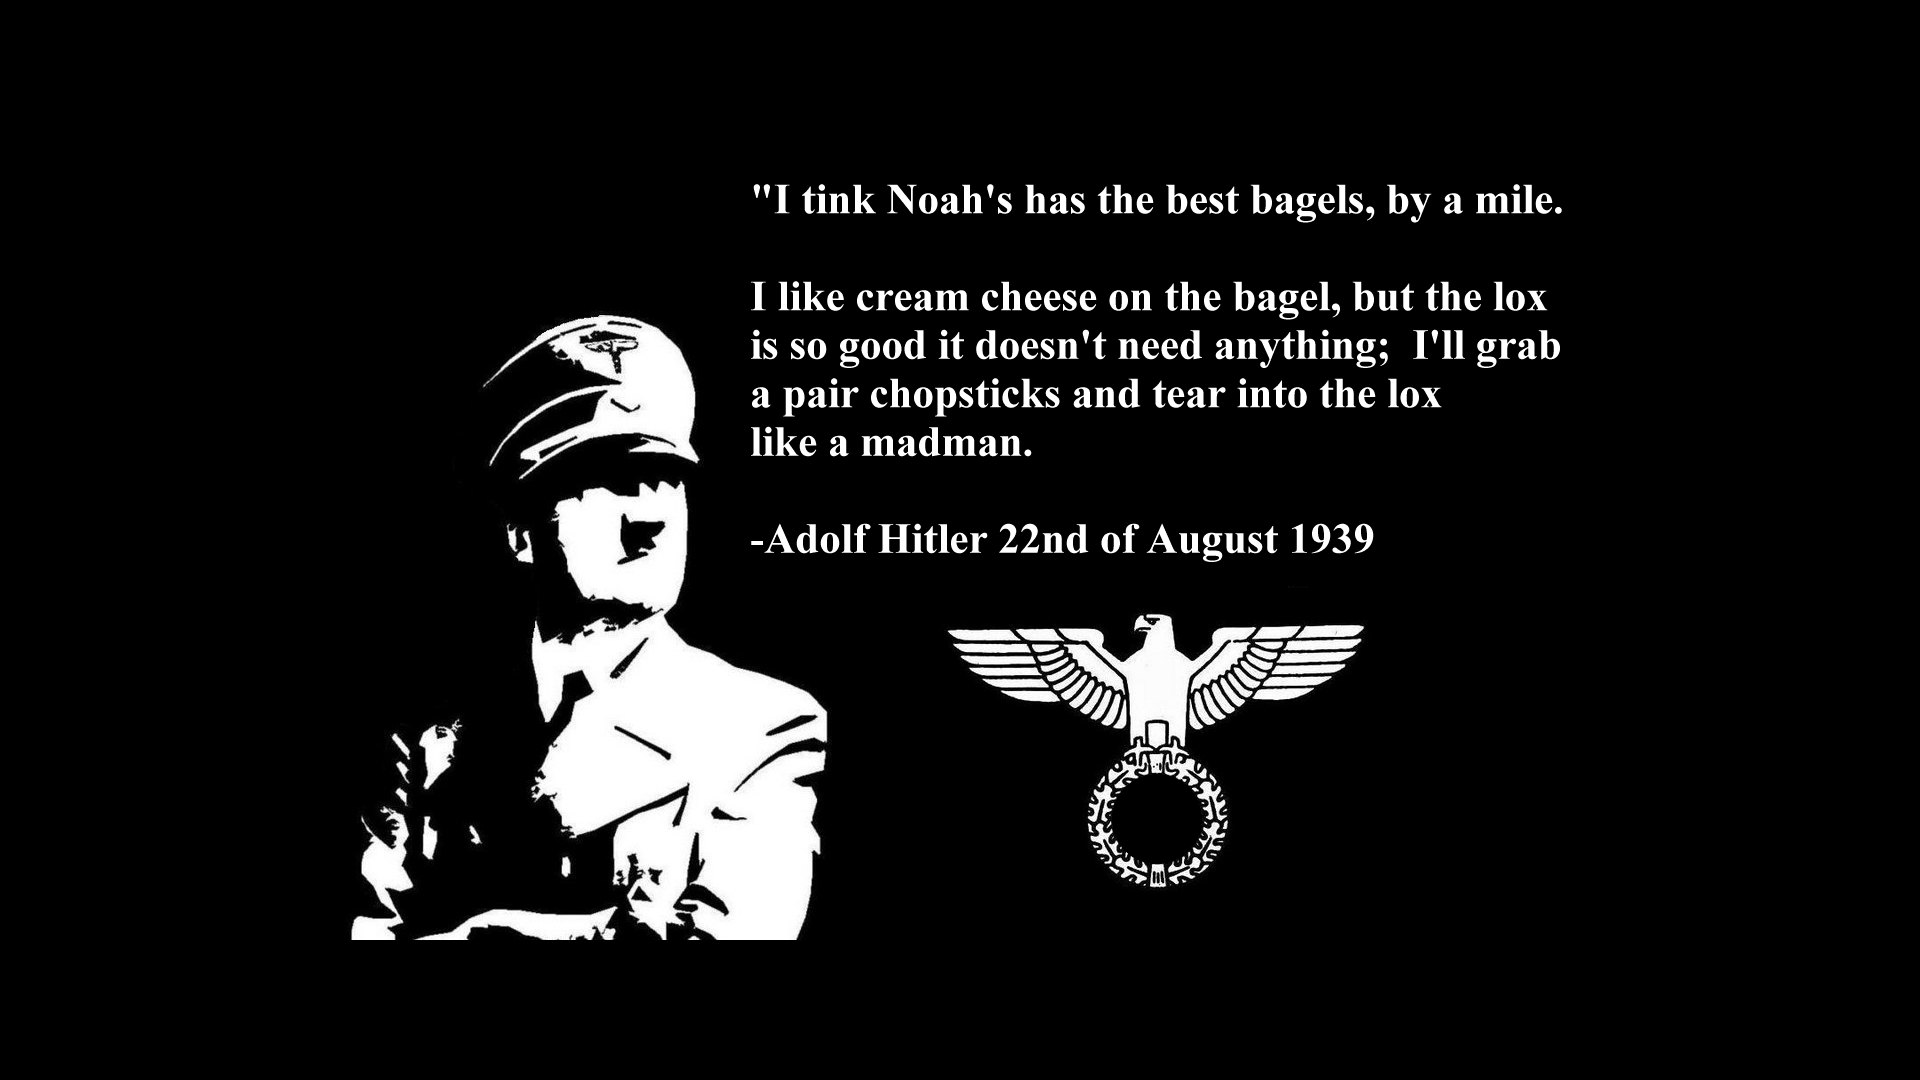 nazi wallpapers page 1 - photo #11